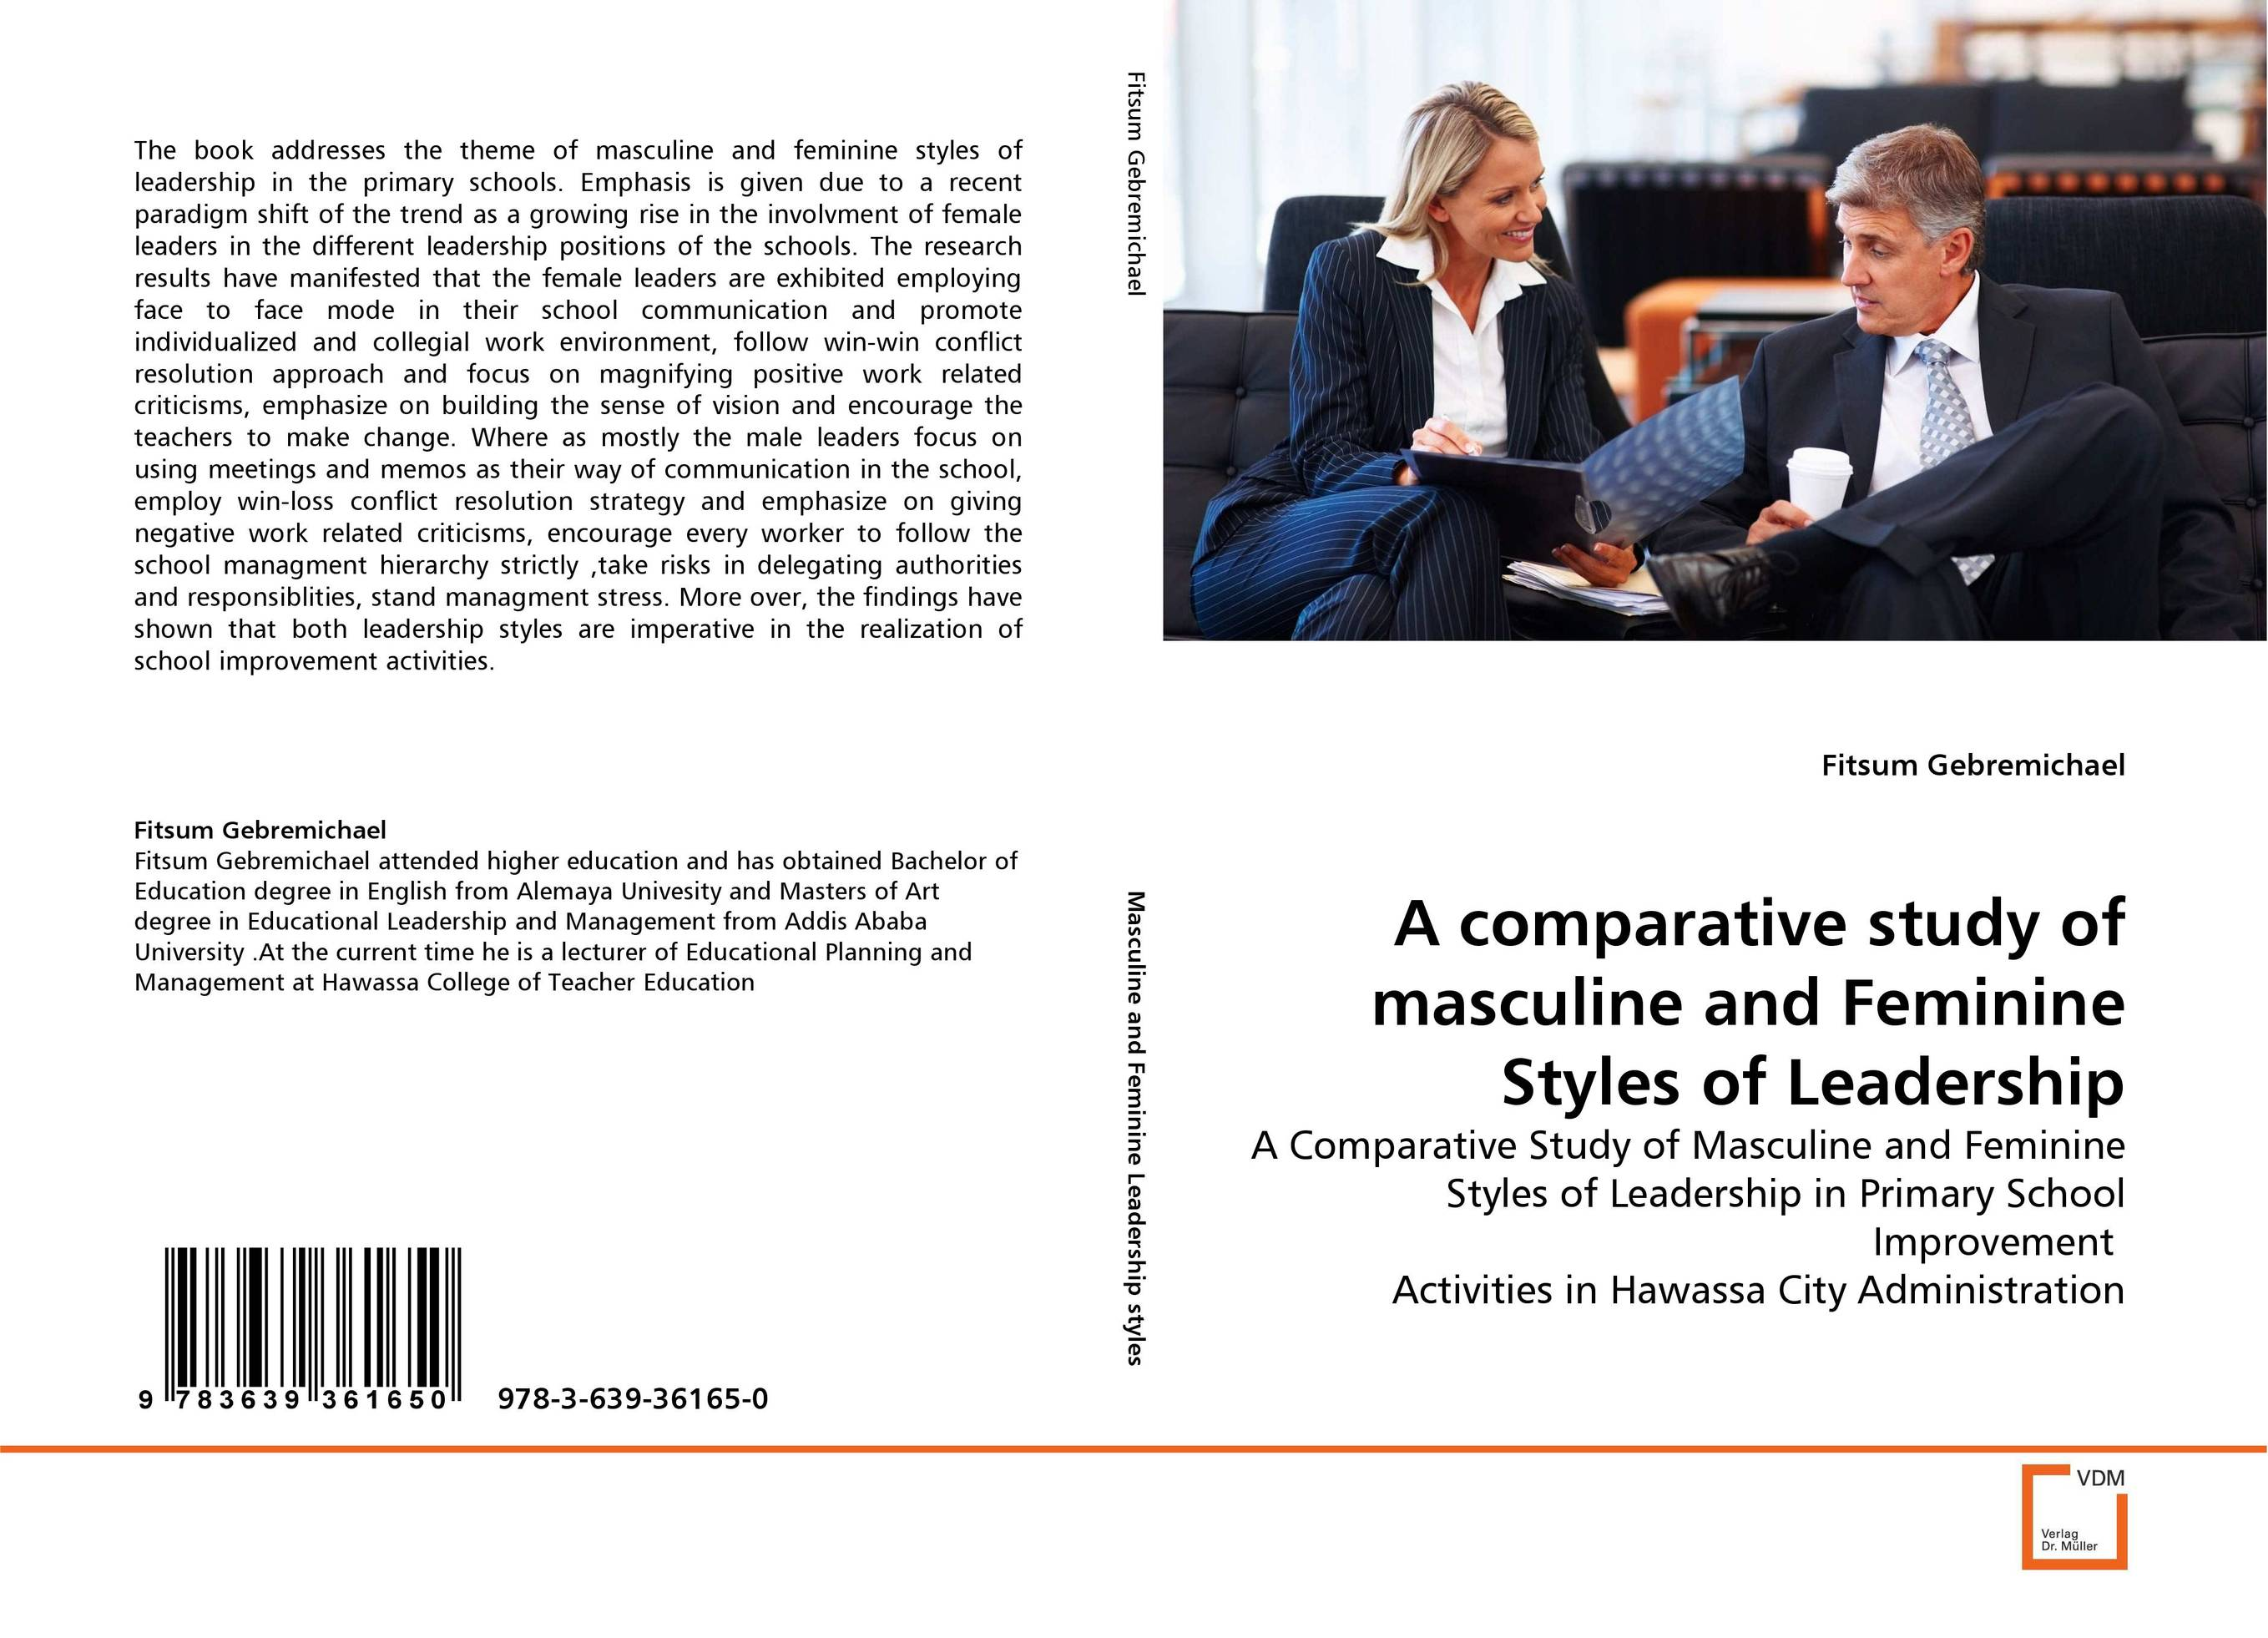 A comparative study of masculine and Feminine Styles of Leadership thomas cleary the book of leadership and strategy